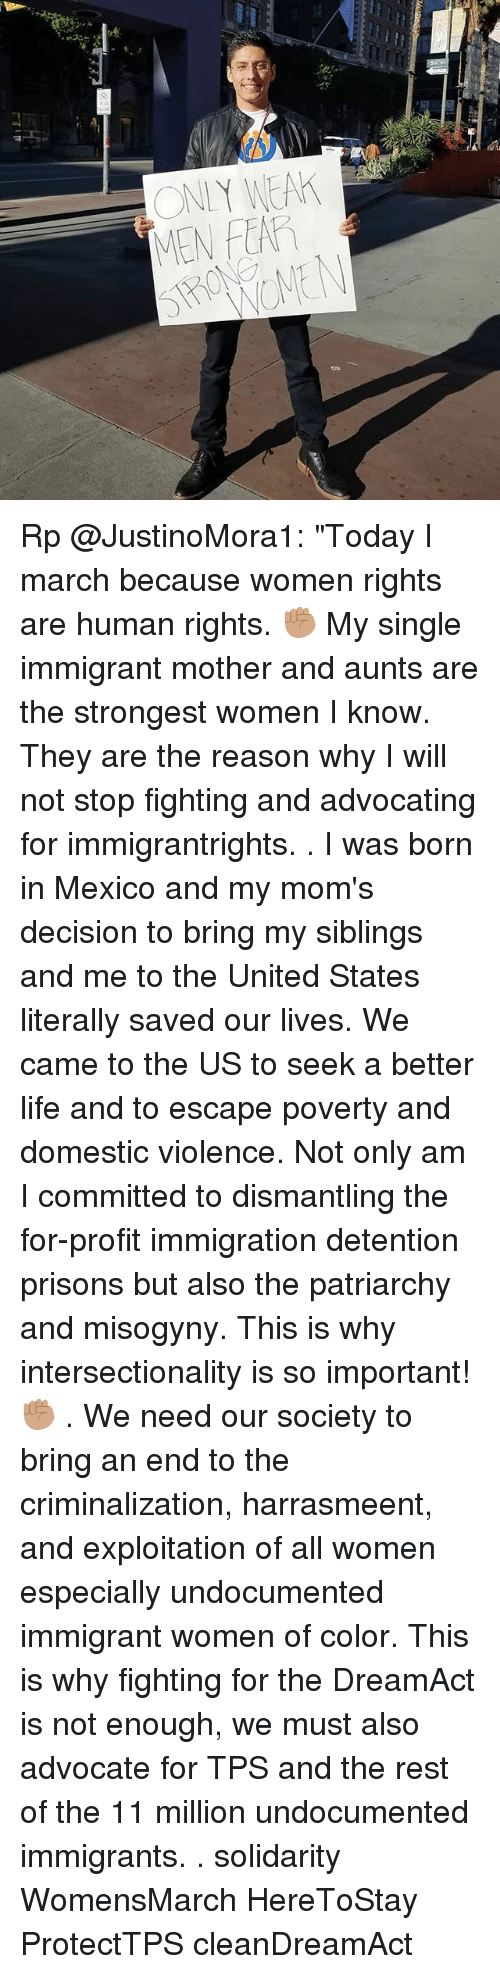 """Life, Memes, and Moms: ONIY WEA  MEN FEAR Rp @JustinoMora1: """"Today I march because women rights are human rights. ✊🏽 My single immigrant mother and aunts are the strongest women I know. They are the reason why I will not stop fighting and advocating for immigrantrights. . I was born in Mexico and my mom's decision to bring my siblings and me to the United States literally saved our lives. We came to the US to seek a better life and to escape poverty and domestic violence. Not only am I committed to dismantling the for-profit immigration detention prisons but also the patriarchy and misogyny. This is why intersectionality is so important! ✊🏽 . We need our society to bring an end to the criminalization, harrasmeent, and exploitation of all women especially undocumented immigrant women of color. This is why fighting for the DreamAct is not enough, we must also advocate for TPS and the rest of the 11 million undocumented immigrants. . solidarity WomensMarch HereToStay ProtectTPS cleanDreamAct"""